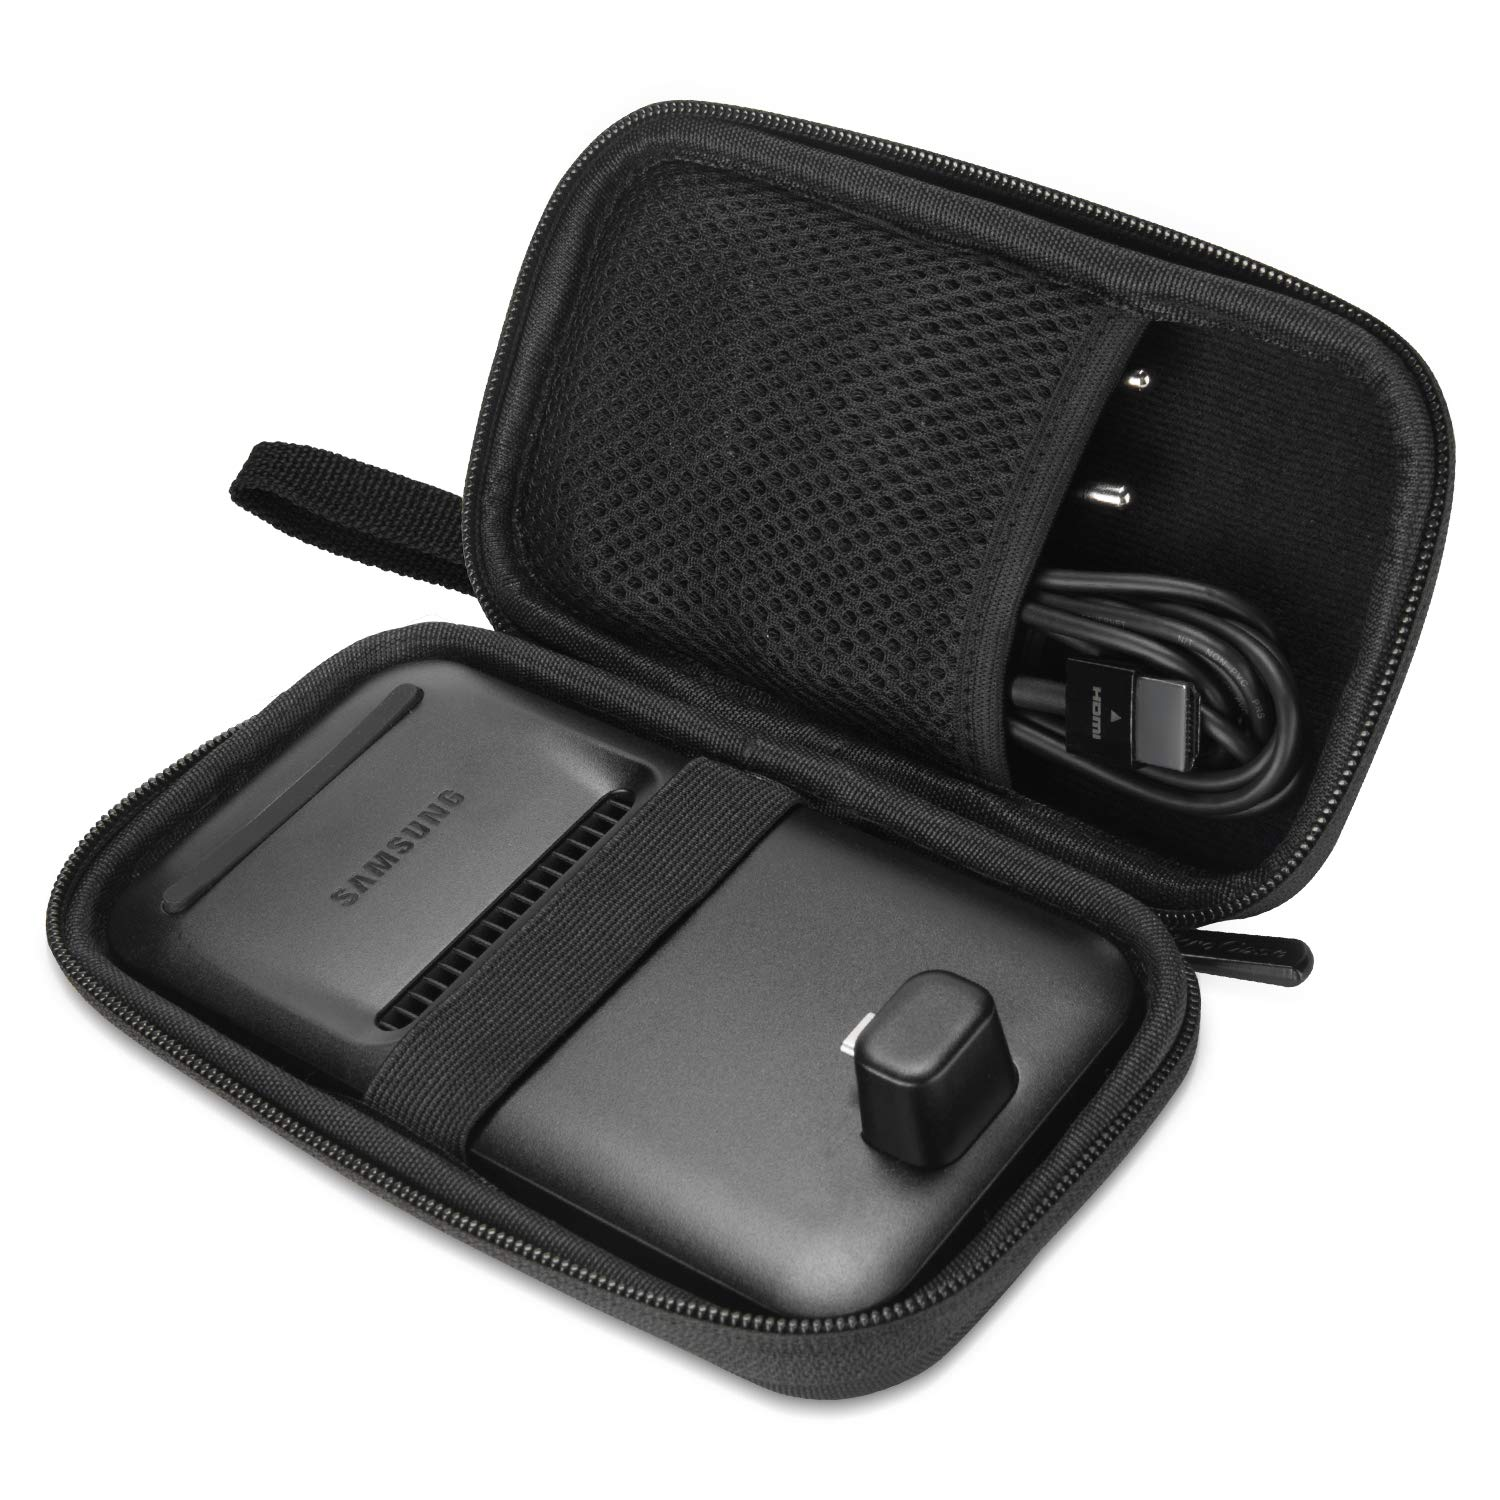 ProCase Carrying Case for DeX Pad, Durable Travel Case Storage Protective Box for DeX Pad Dock -Black